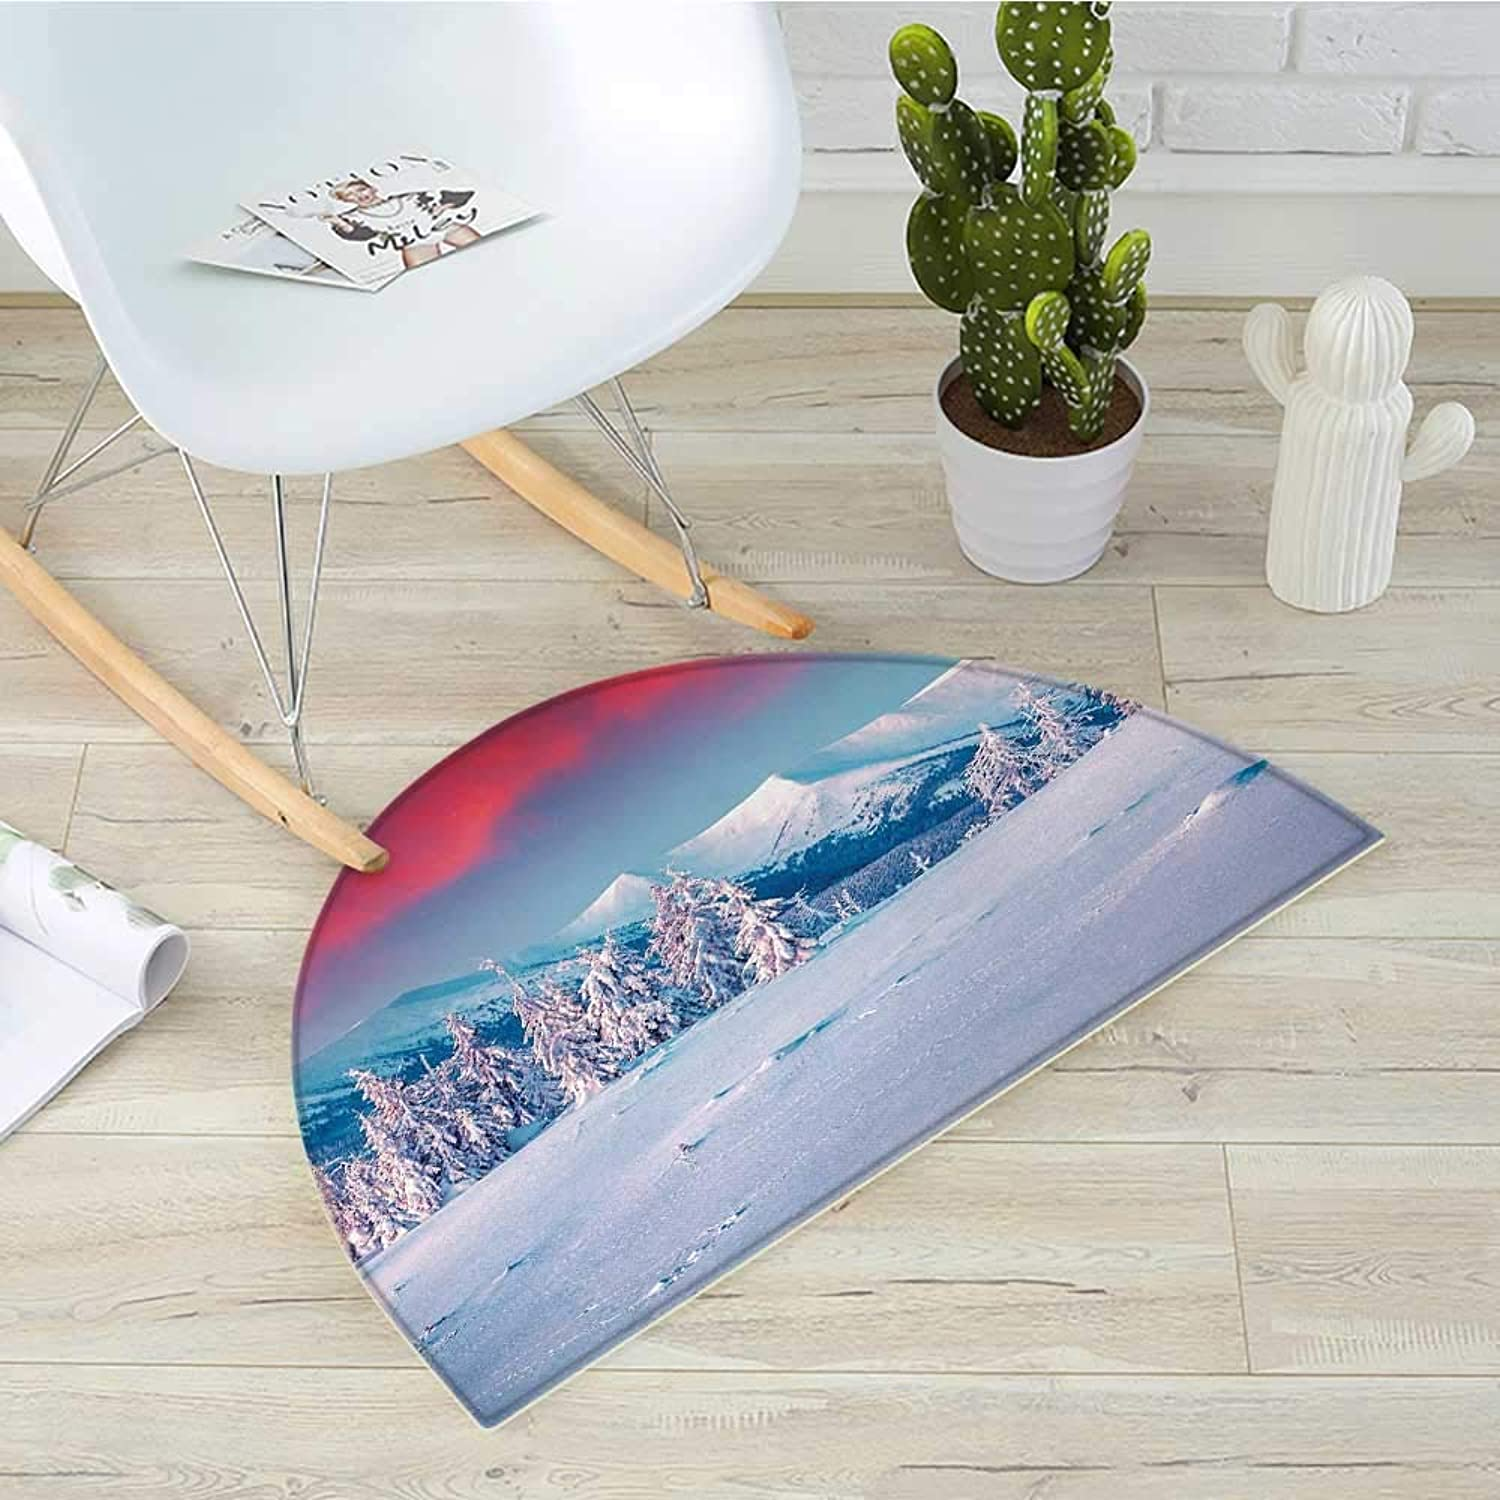 Landscape Semicircular CushionSunset Dawn in Winter Snowy with Pine Trees Forest Mountain Wiev Entry Door Mat H 39.3  xD 59  Dark Coral White Sky bluee